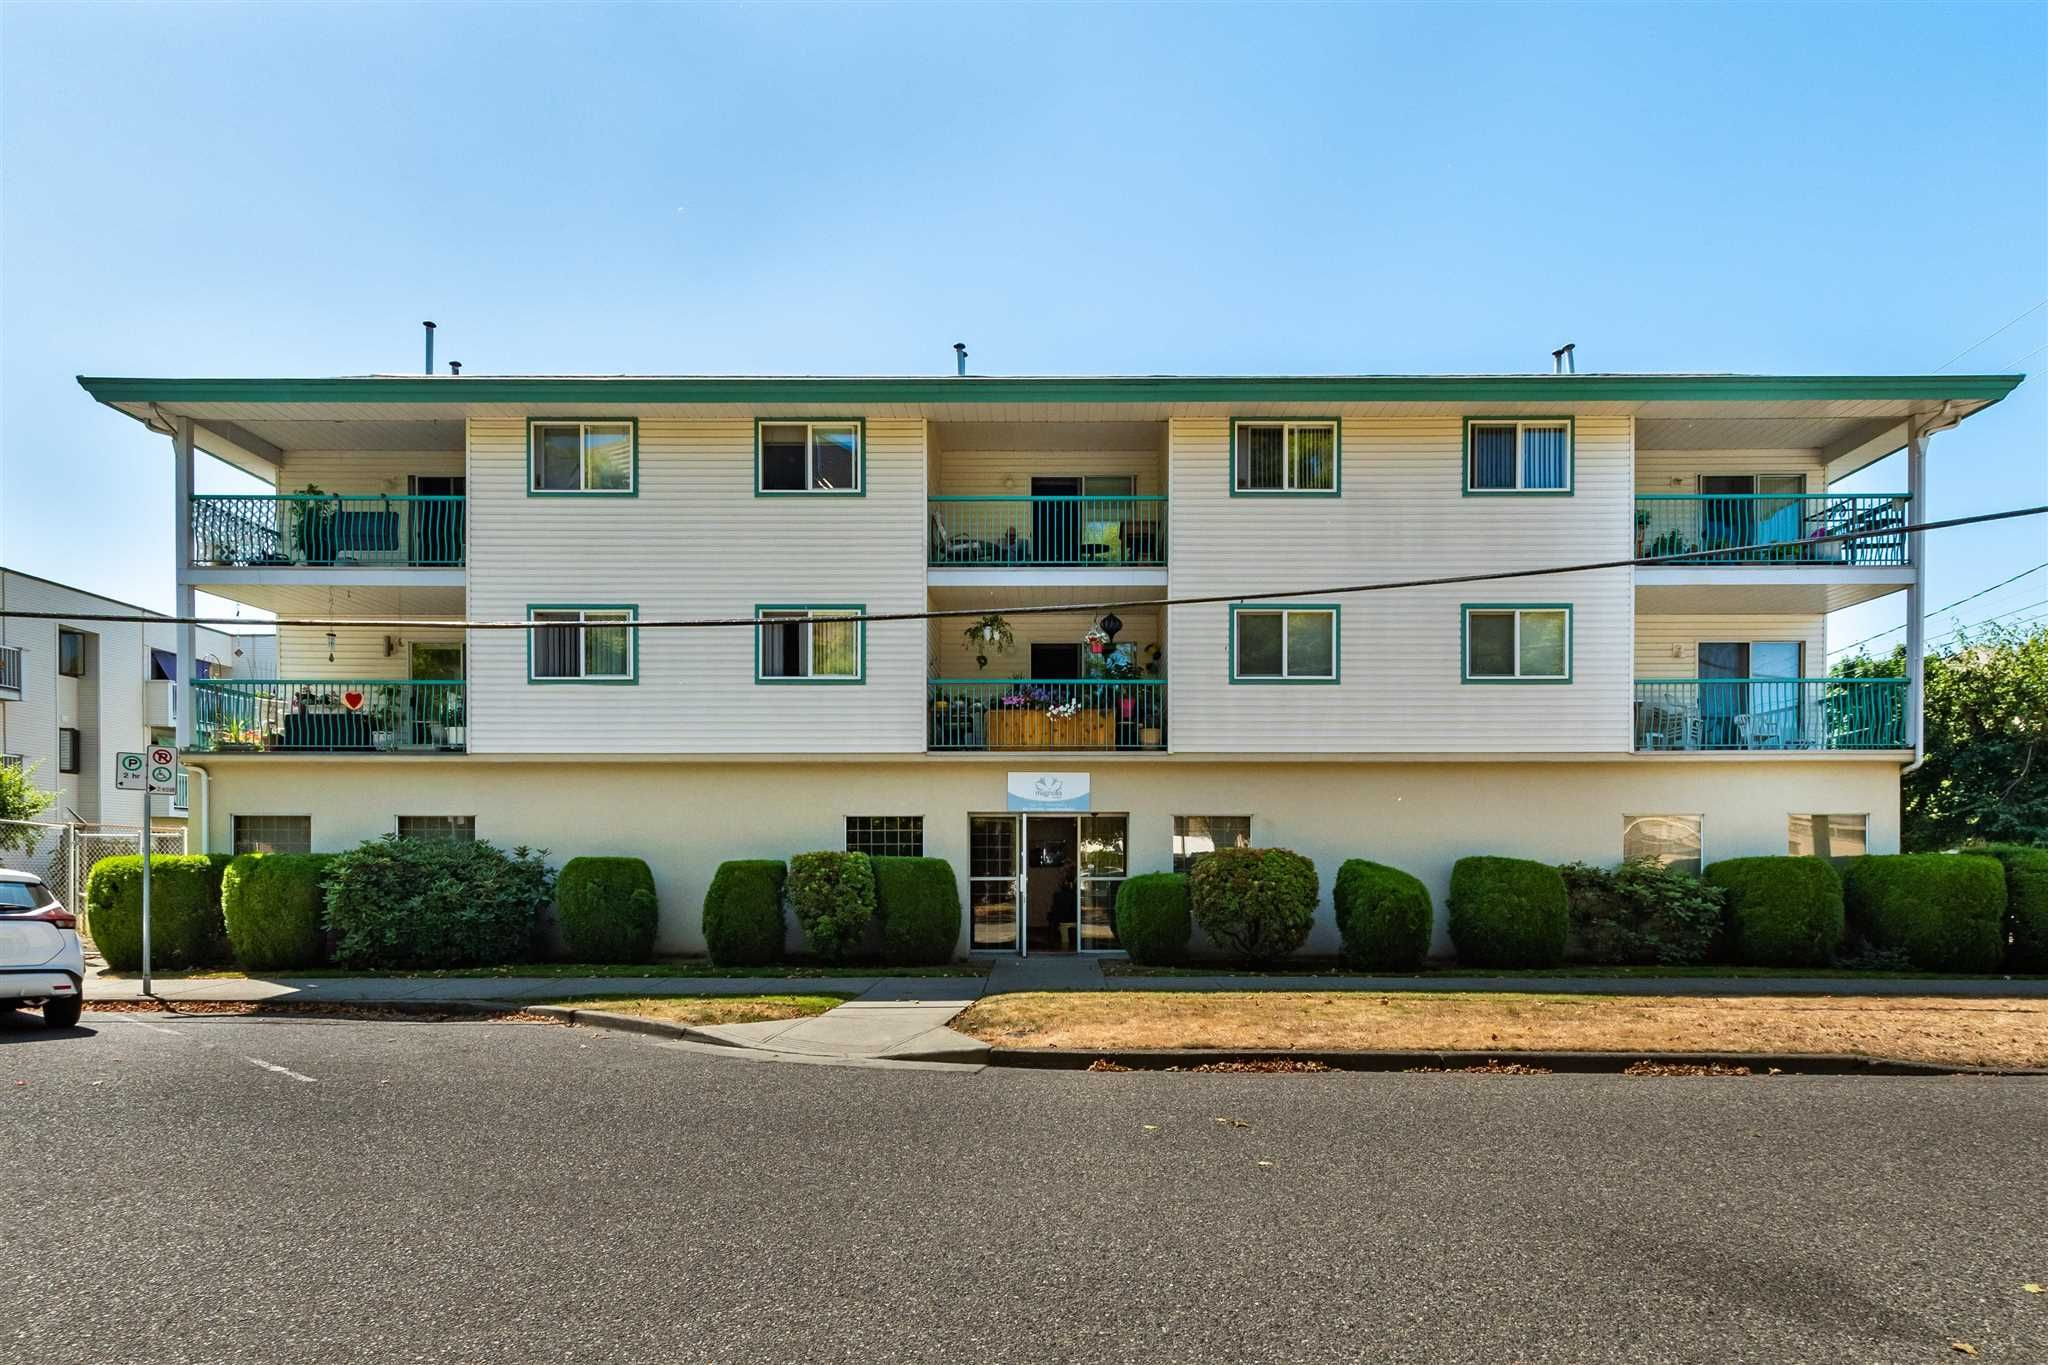 """Main Photo: 204 9006 EDWARD Street in Chilliwack: Chilliwack W Young-Well Condo for sale in """"EDWARD PLACE"""" : MLS®# R2603115"""